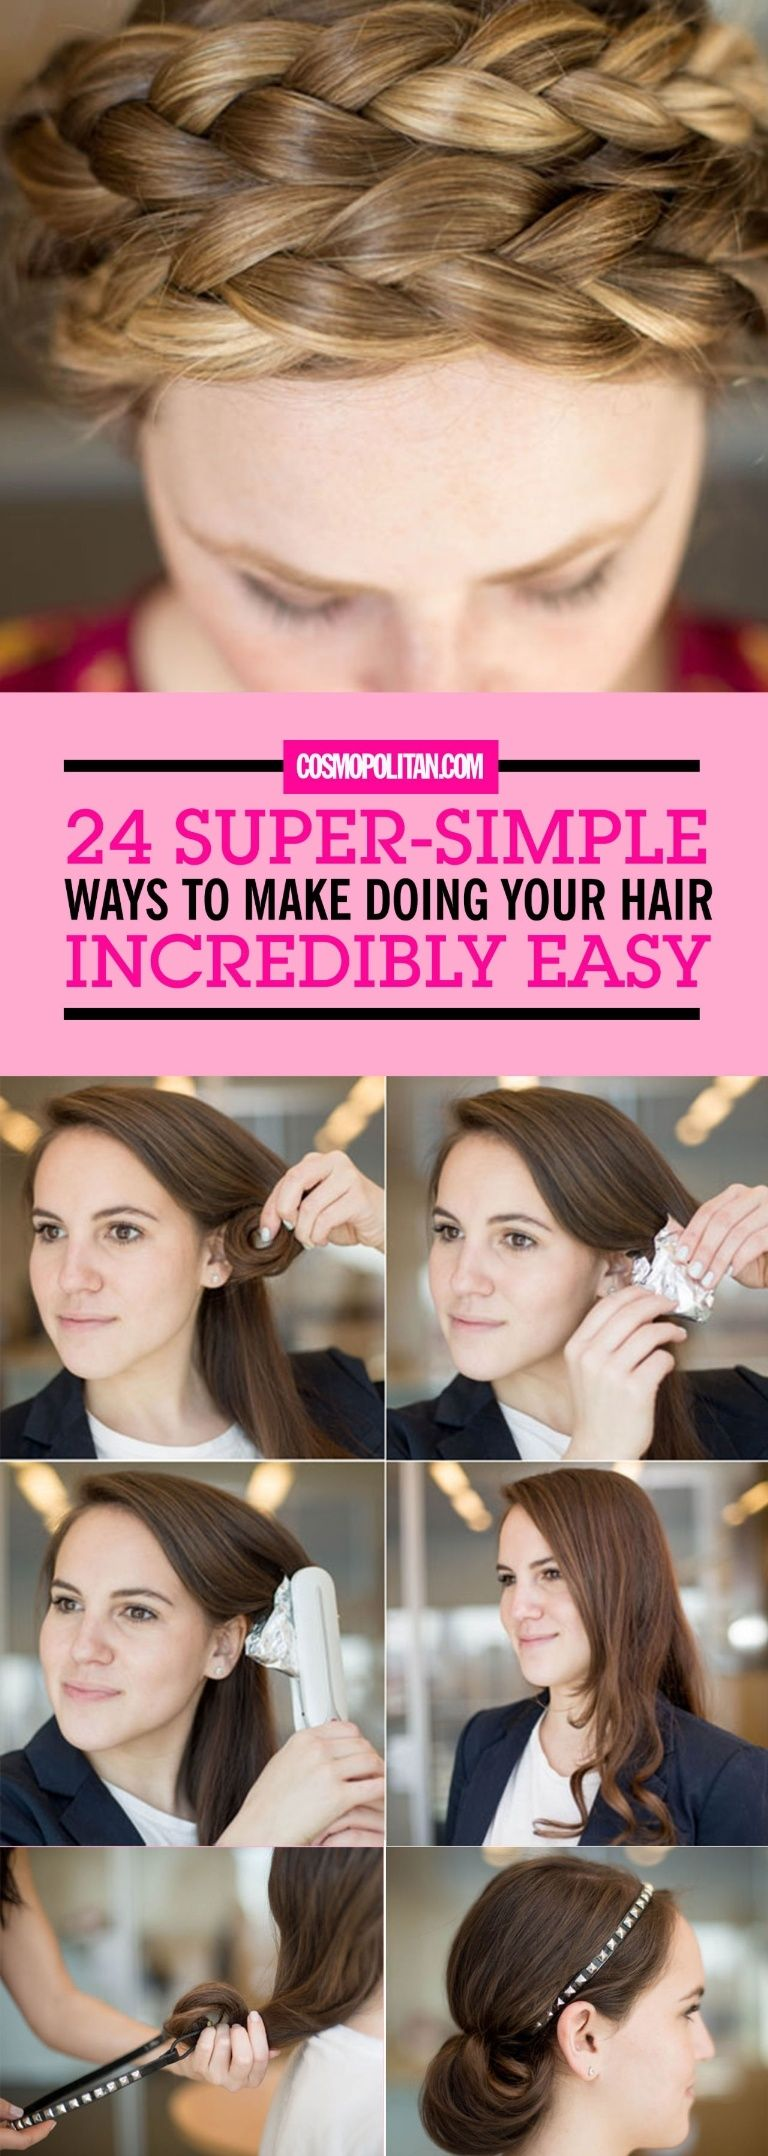 15 Super-Simple Ways to Make Doing Your Hair Incredibly Easy | Quick curly hairstyles, Hair ...